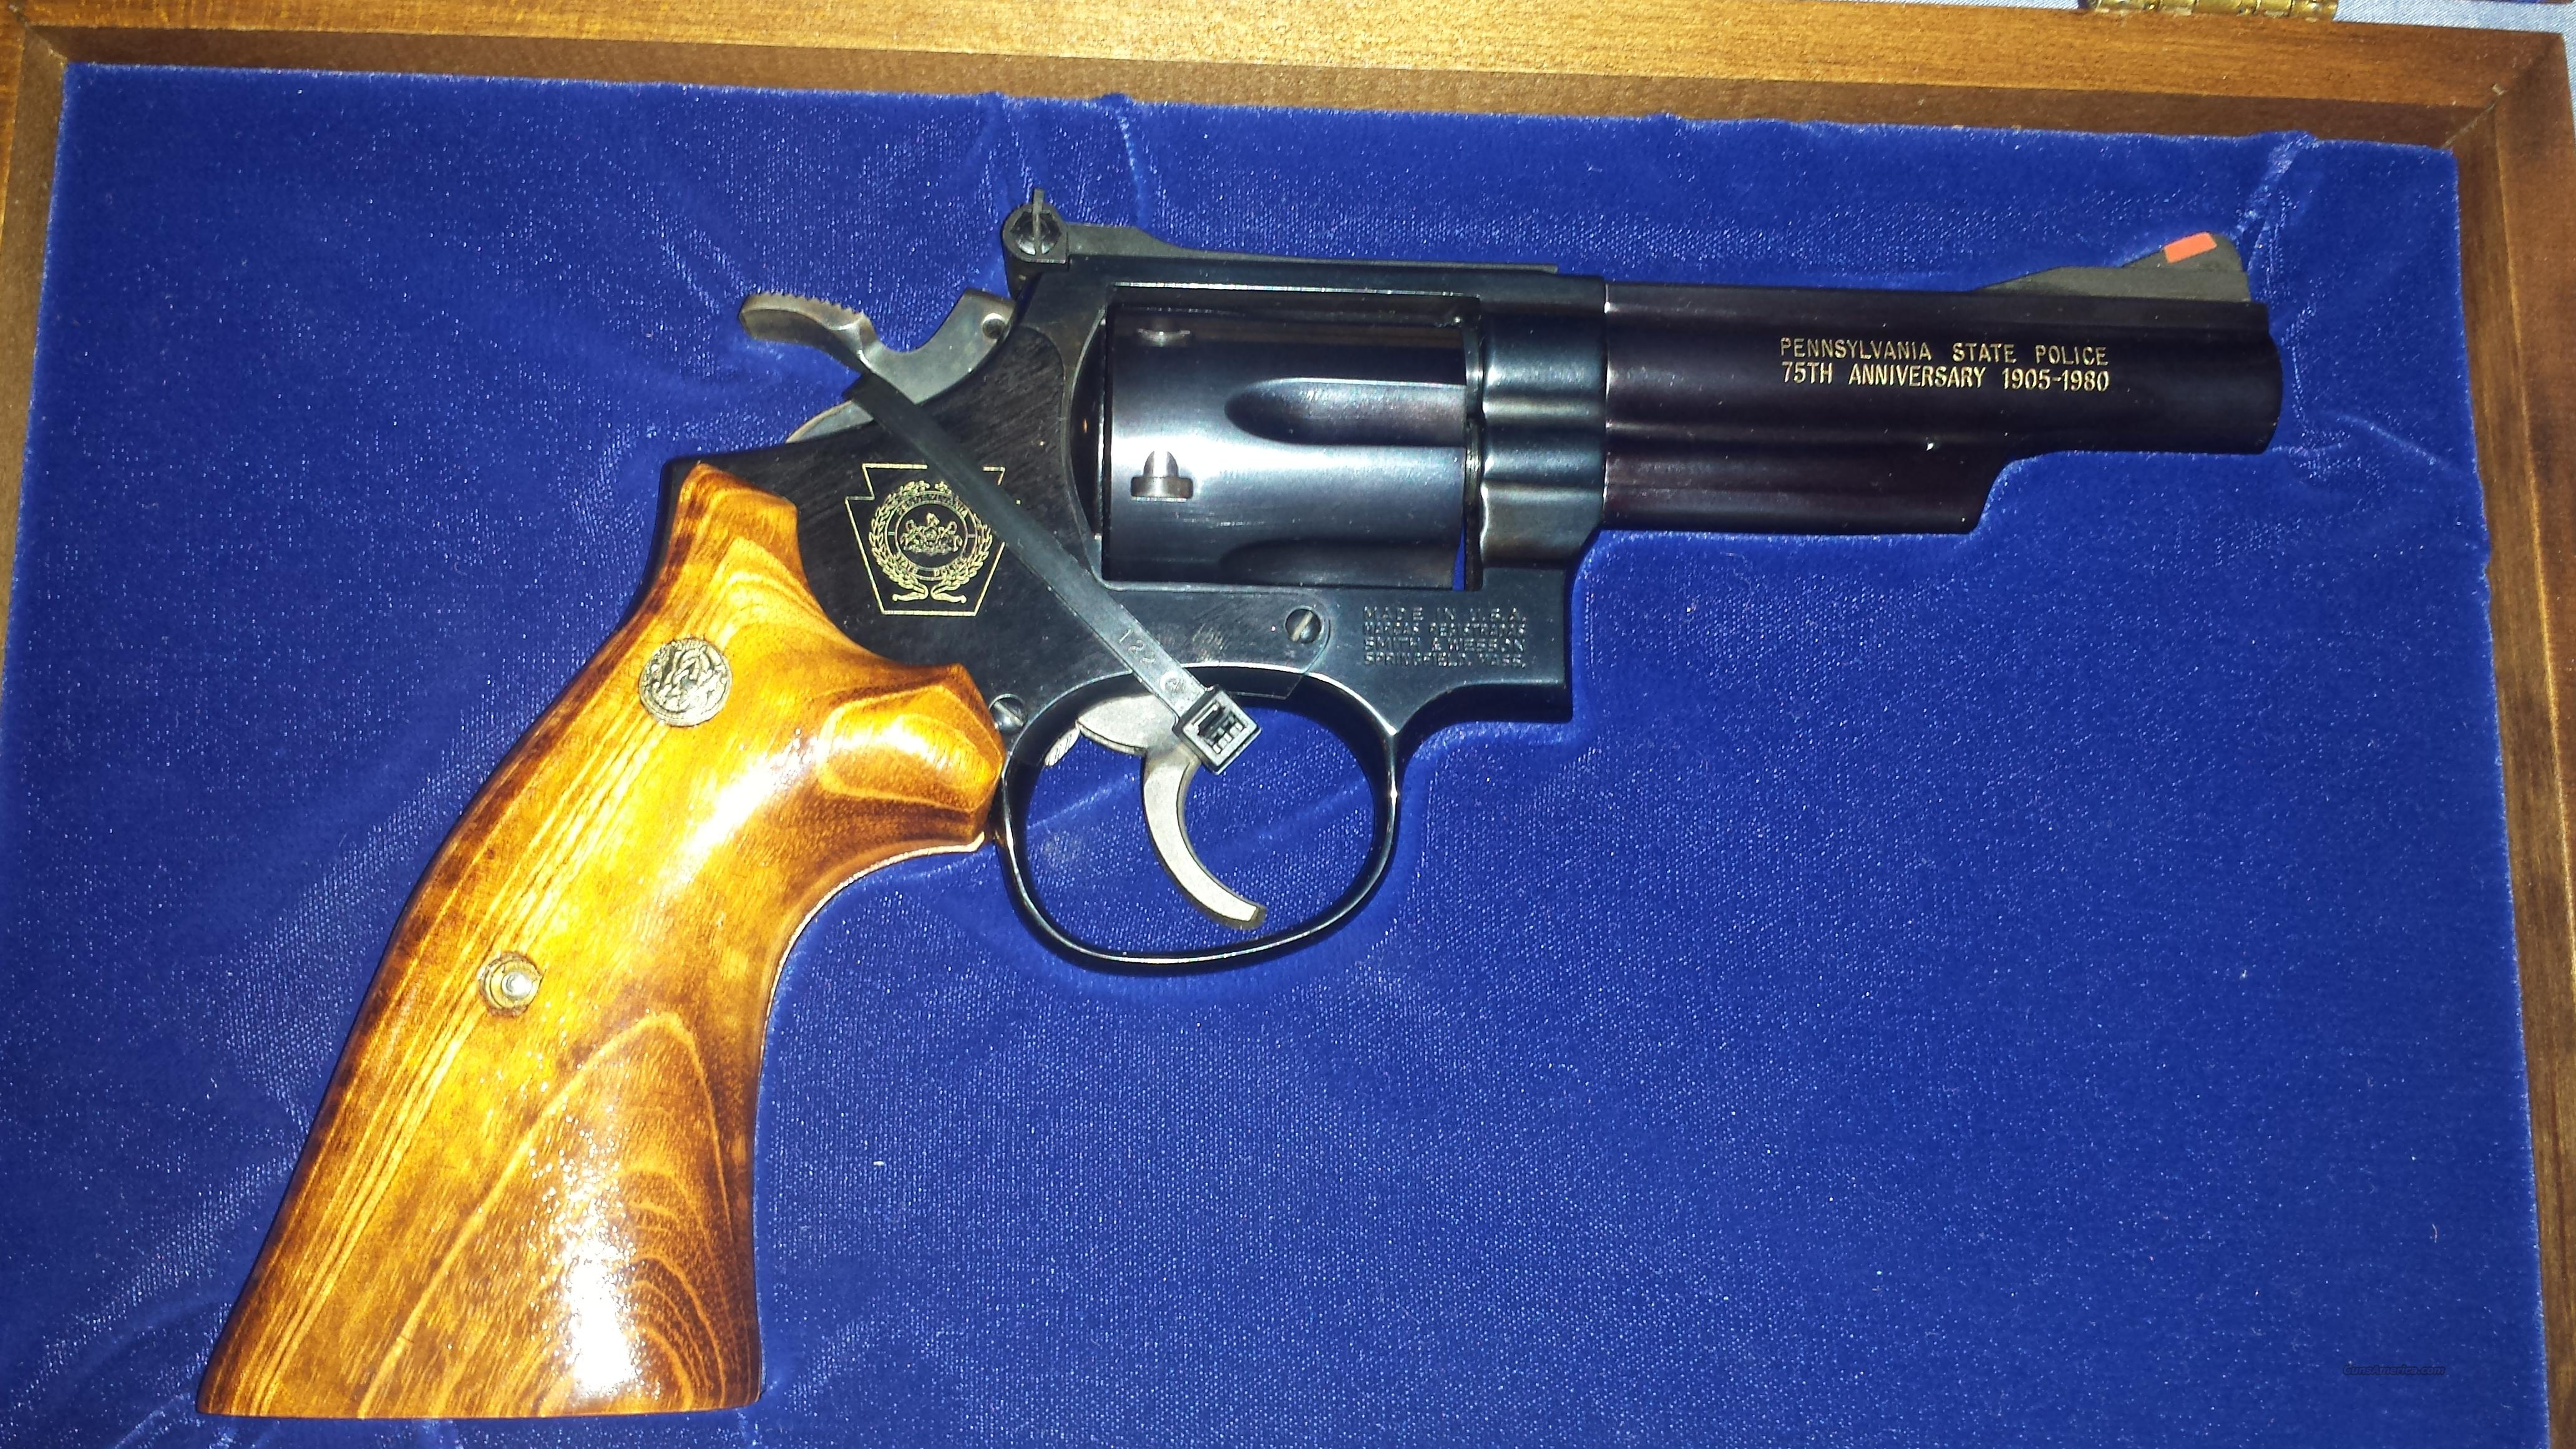 S&W Model 19-4 PA. State Police 75th Anniversary .357 Mag.  Guns > Pistols > Smith & Wesson Revolvers > Full Frame Revolver